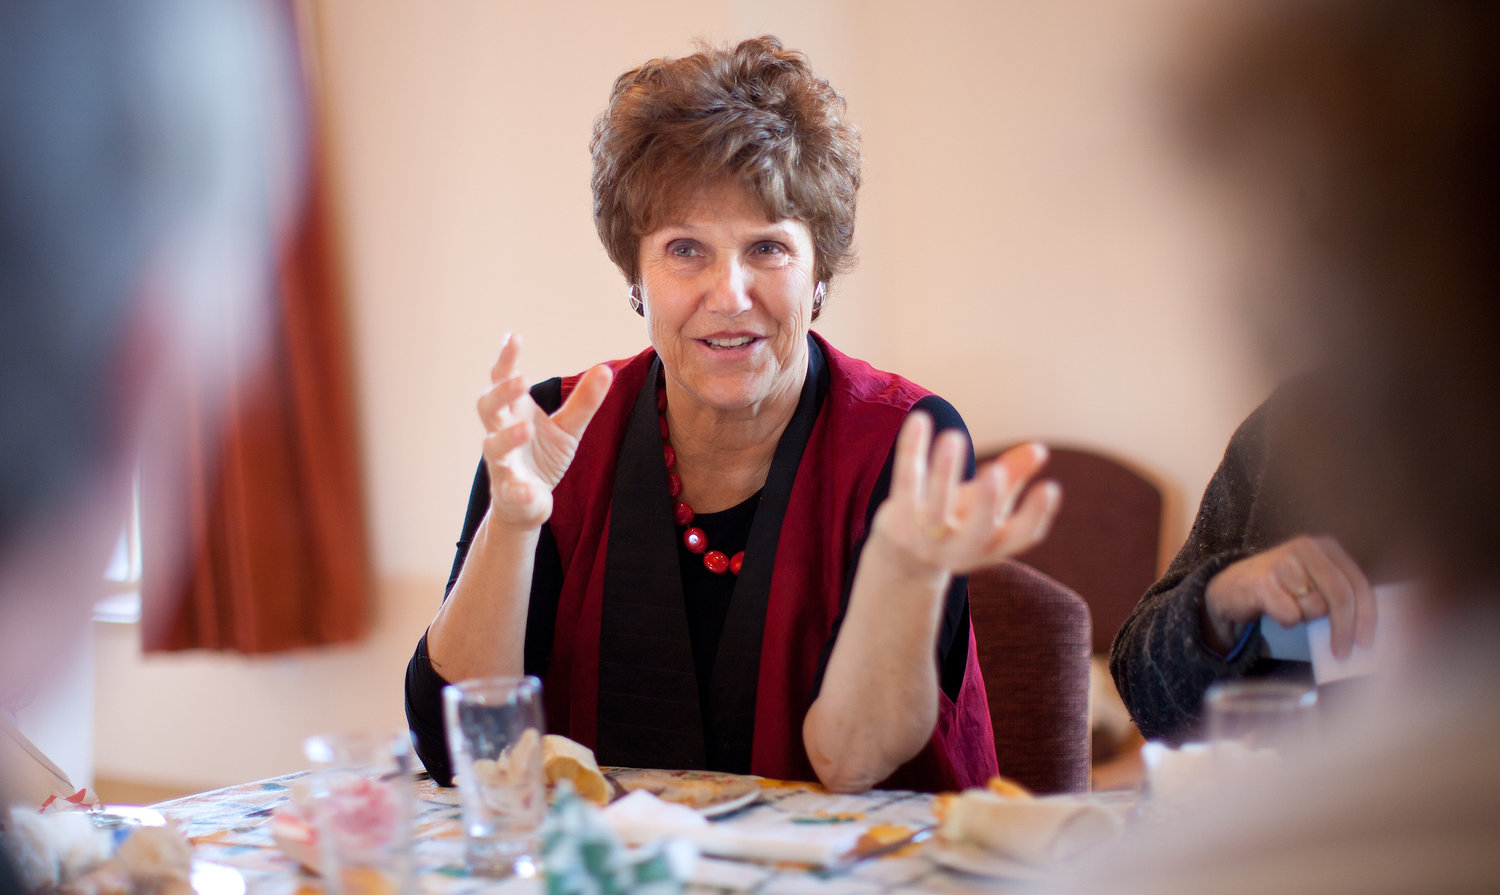 Renowned Jewish cookbook author Joan Nathan talks with students who took part in a cooking class at the National Yiddish Book Center in Amherst, MA in 2011.